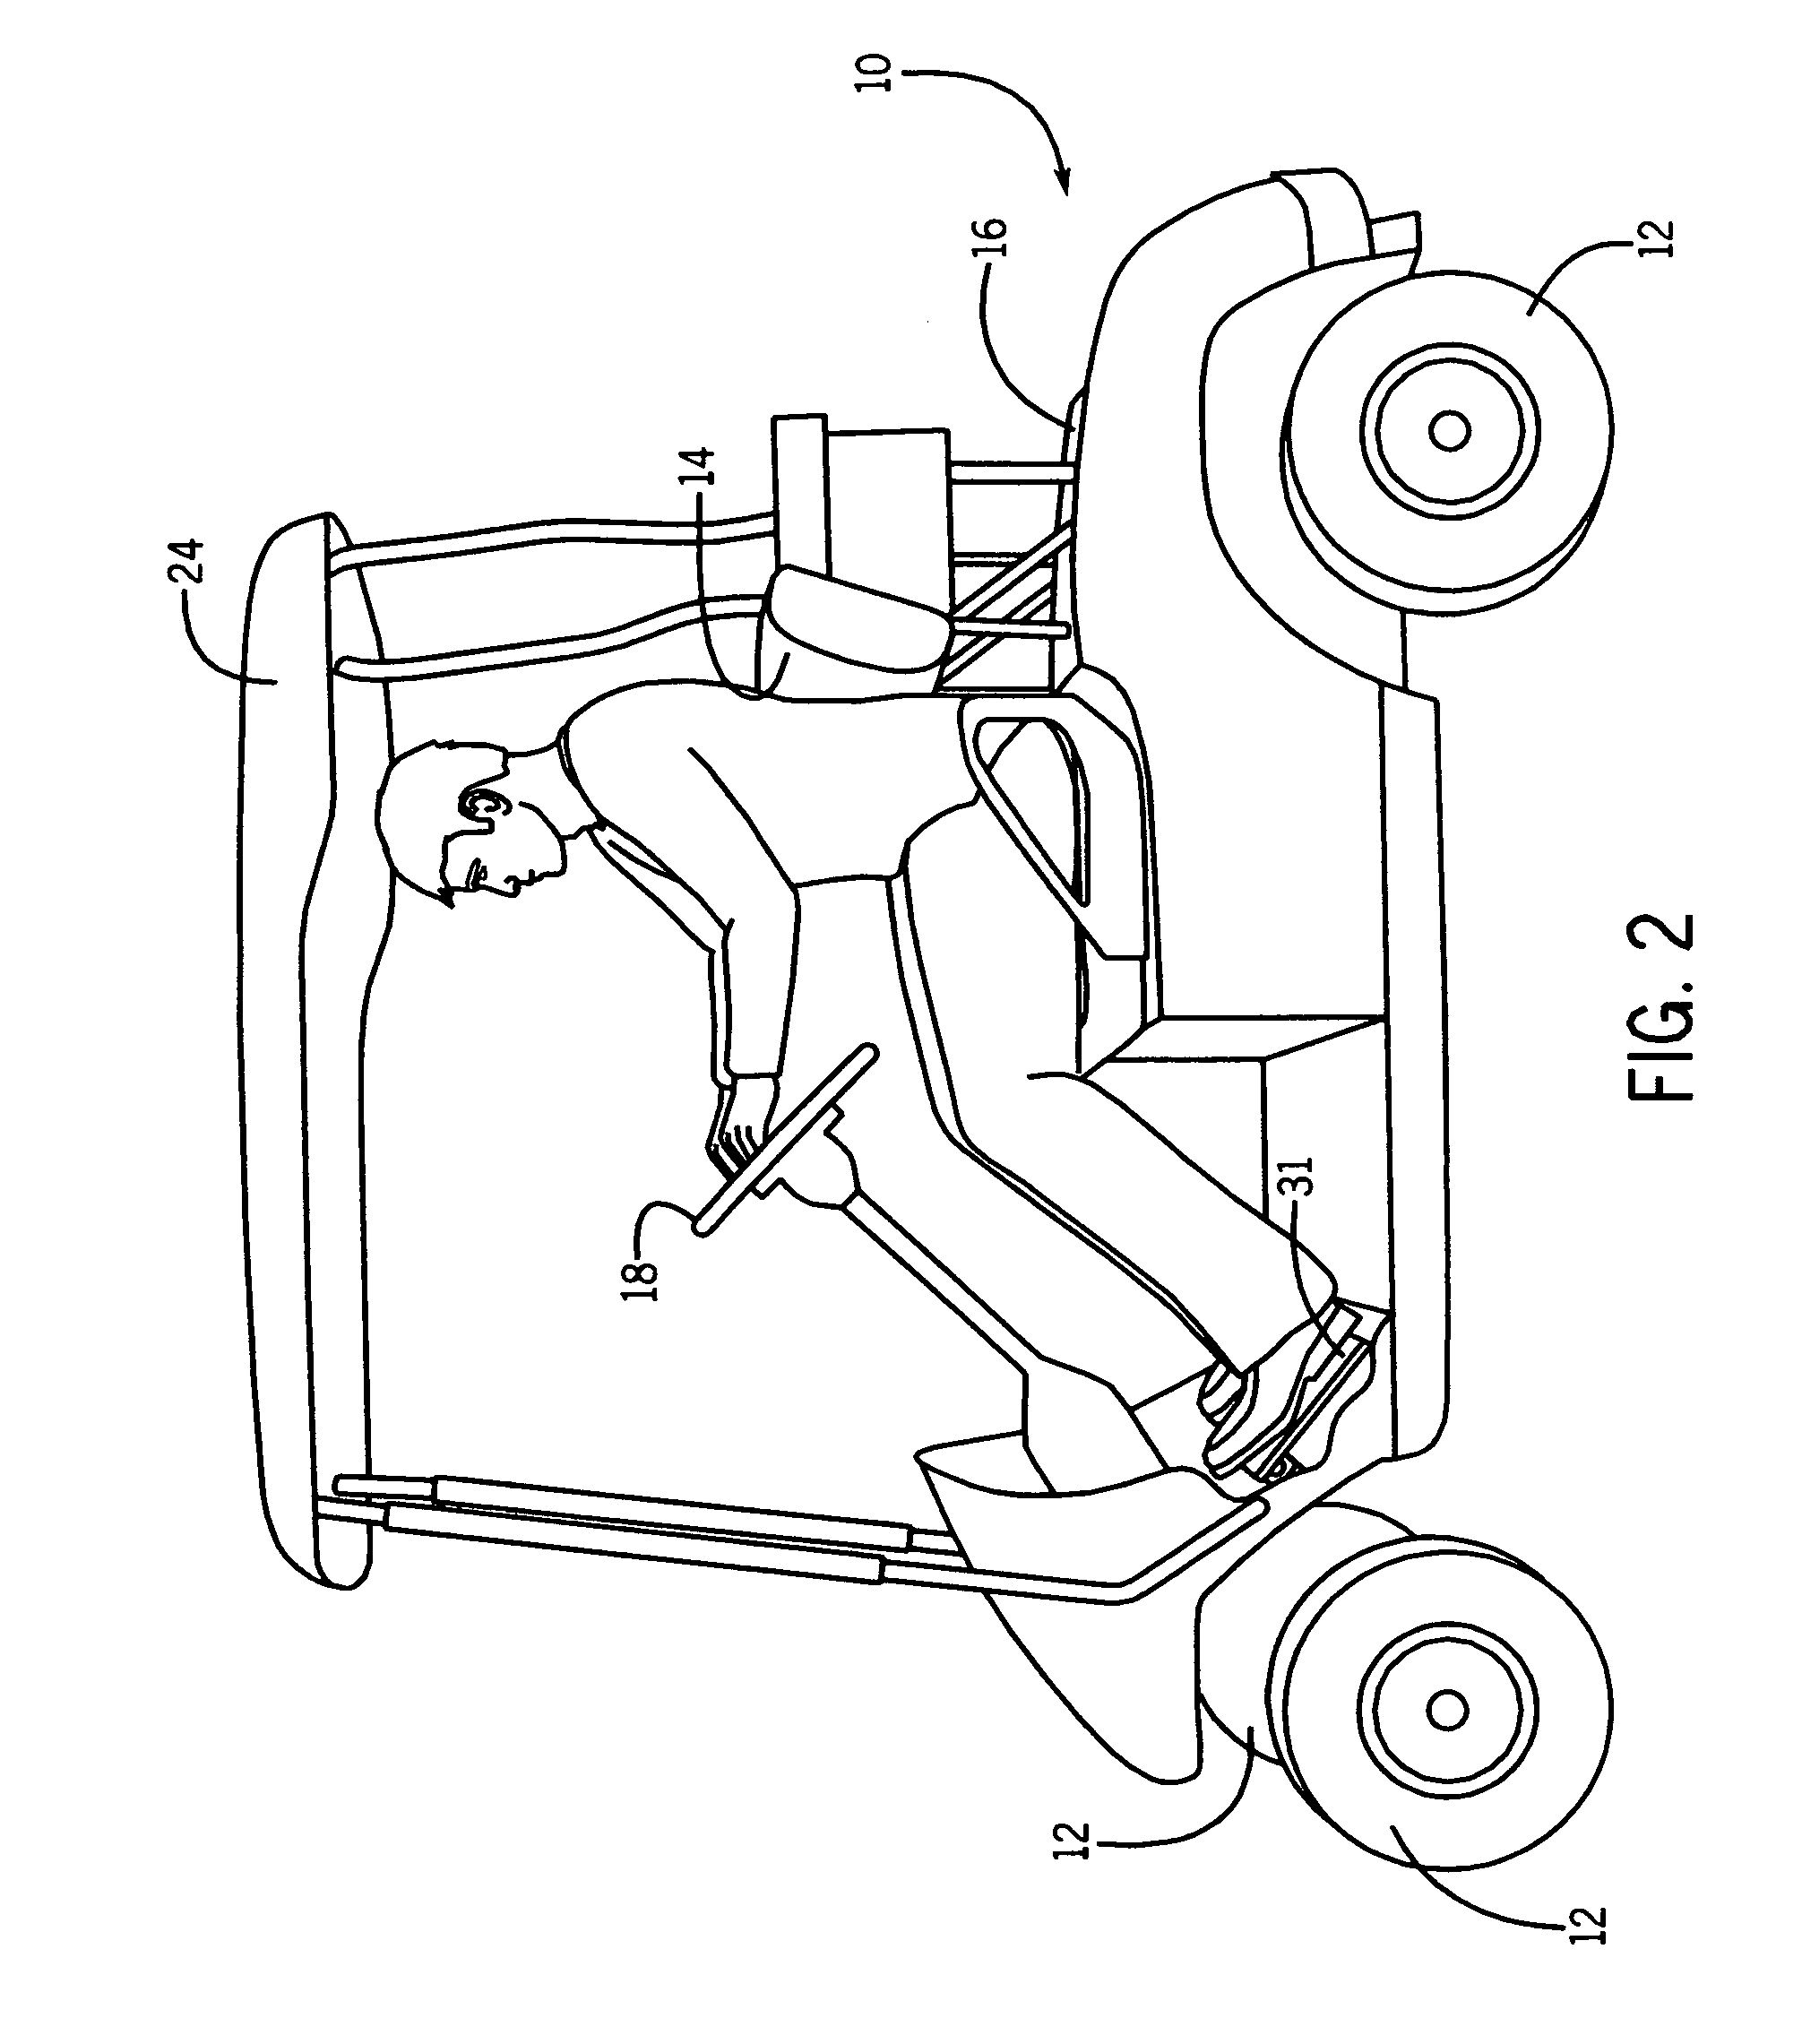 Precedent Golf Cart Owners Manual Club Car Battery Wiring Diagram Free Download Pdf Service E